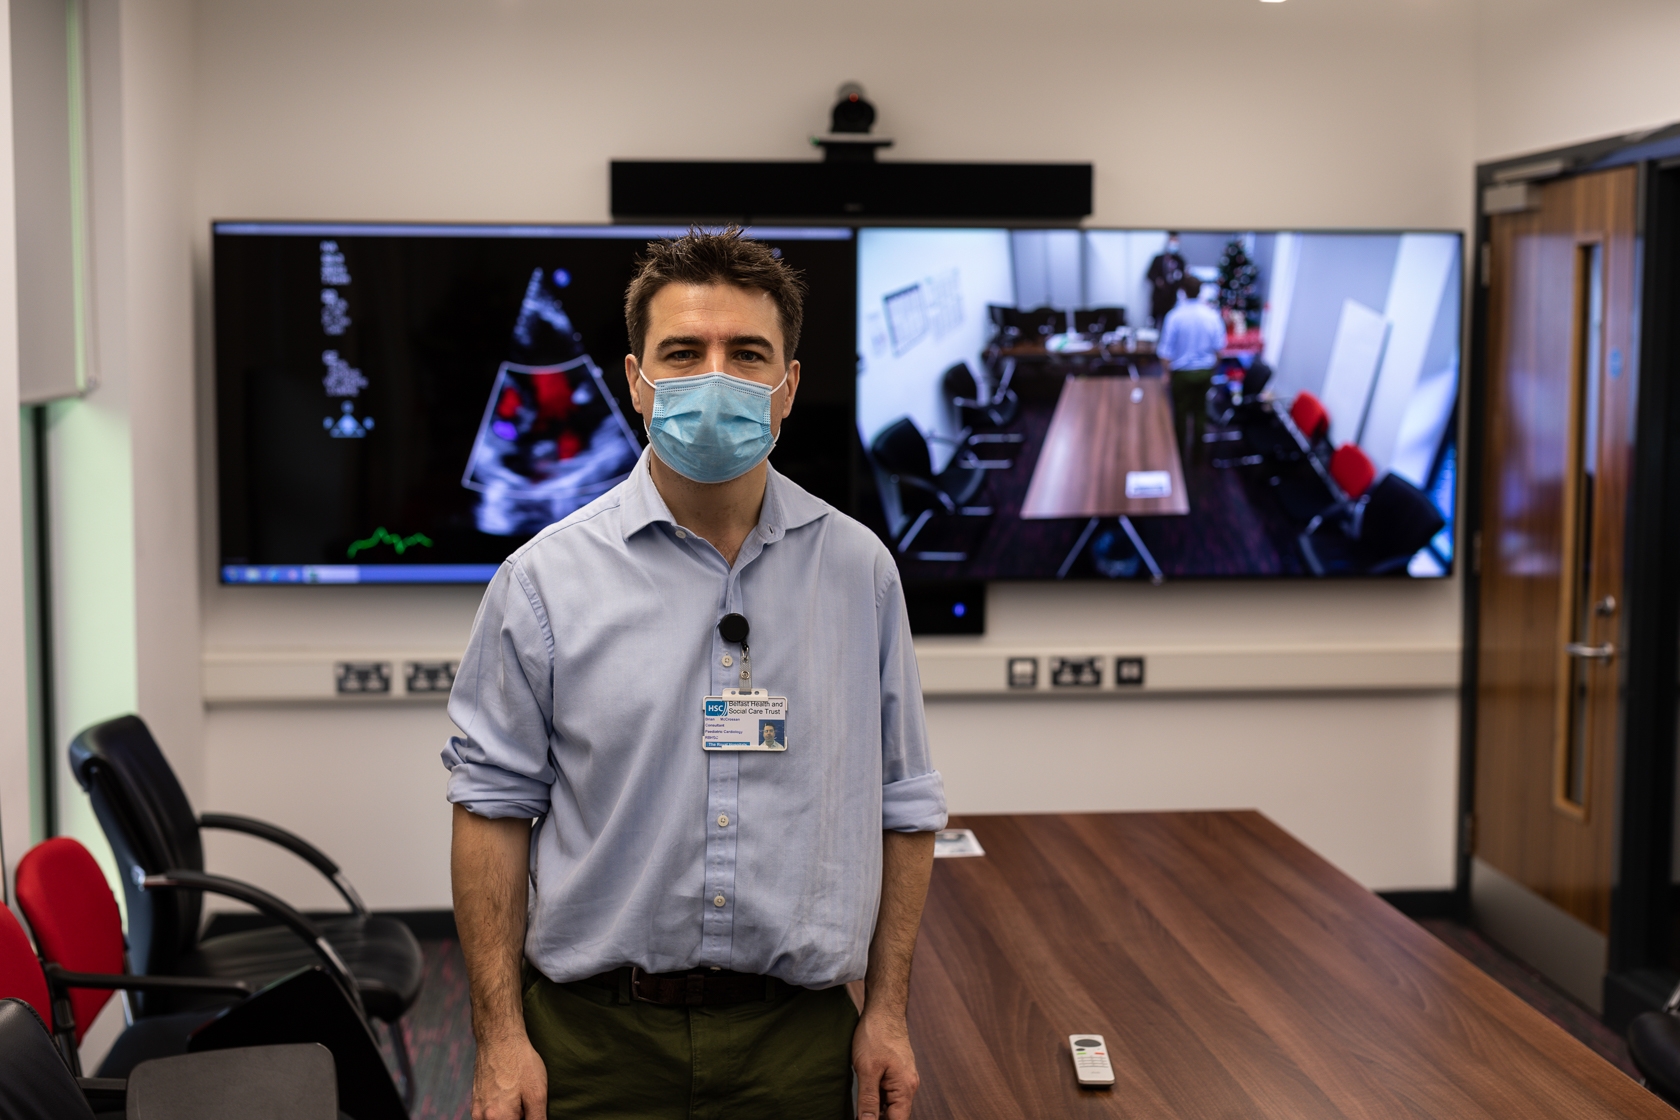 Doctor at the Royal Belfast Hospital for Sick Children with Pexip telehealth video conference call system